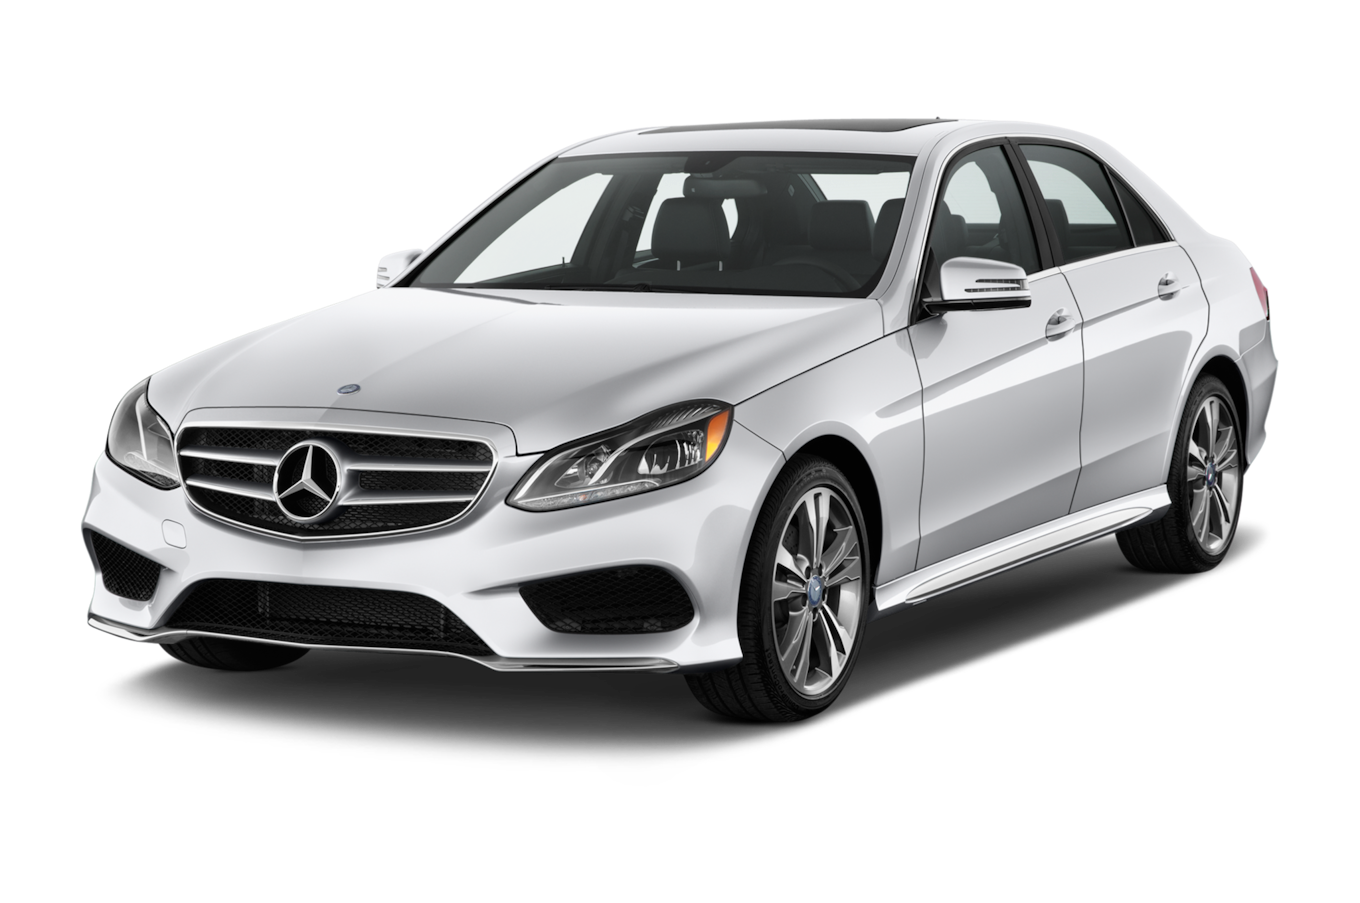 2015 Mercedes-Benz E-Class Reviews and Rating | Motor Trend